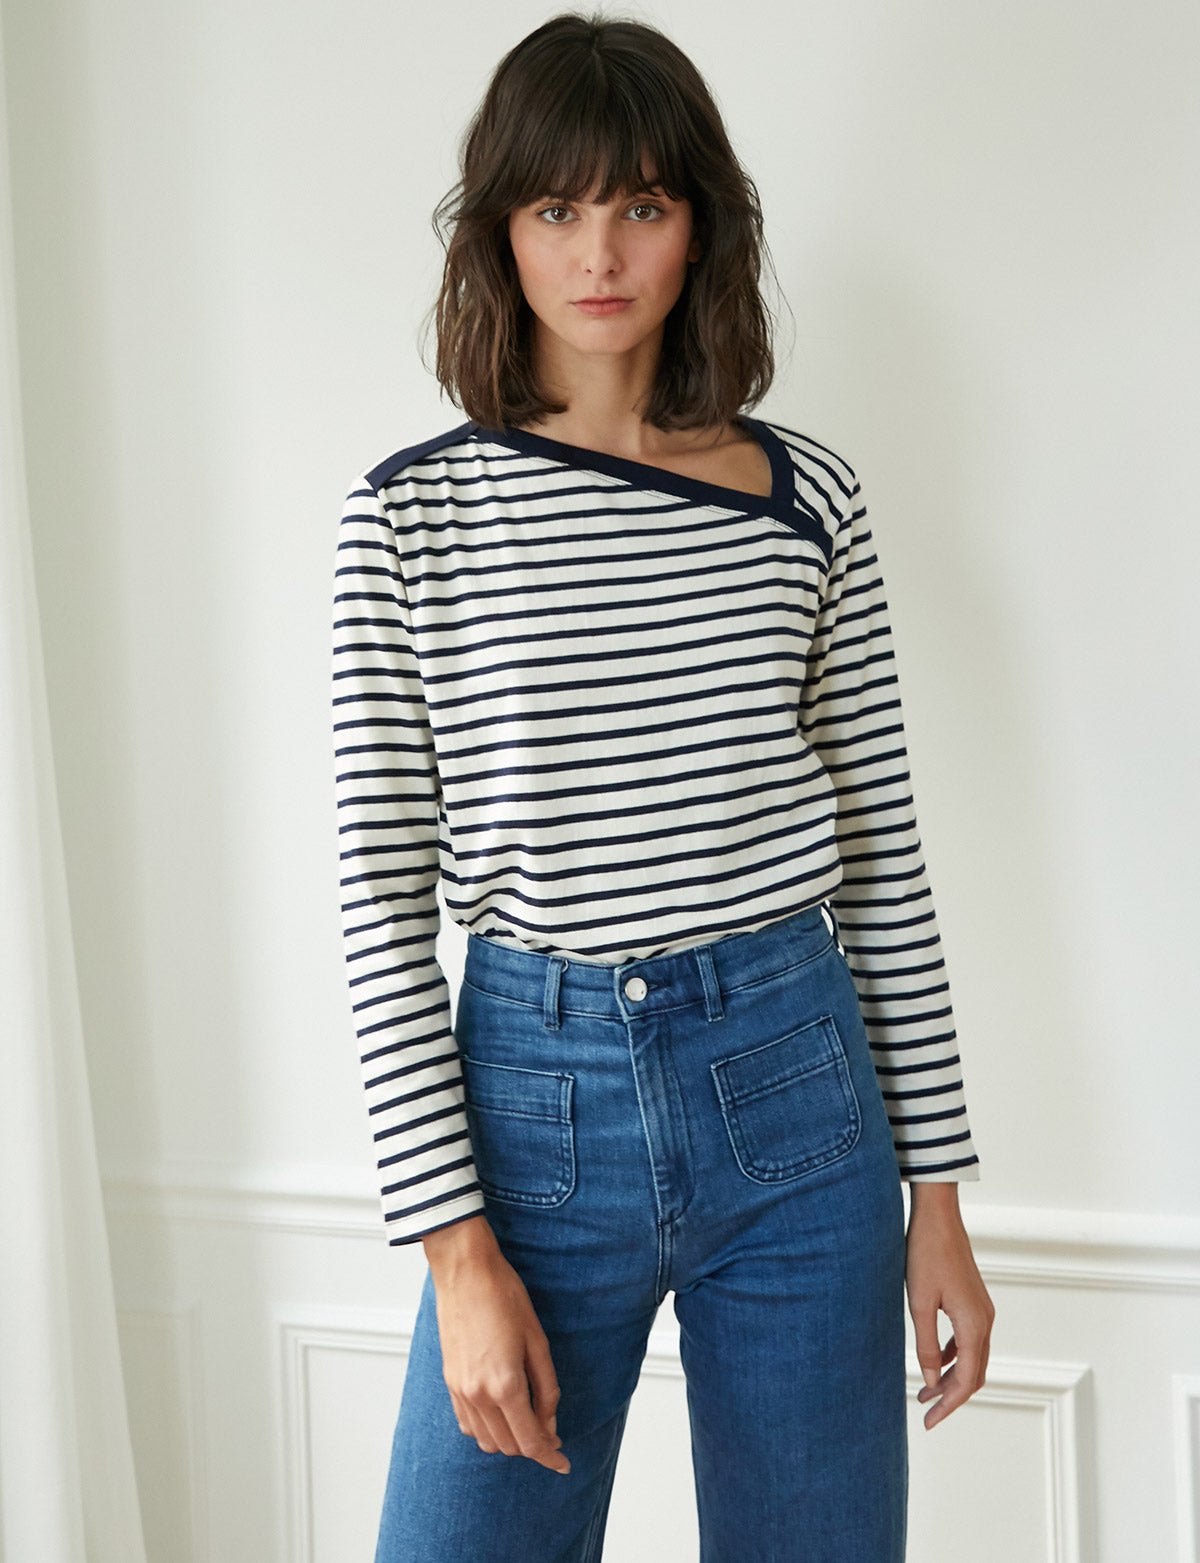 Asymmetric Navy Striped Tee